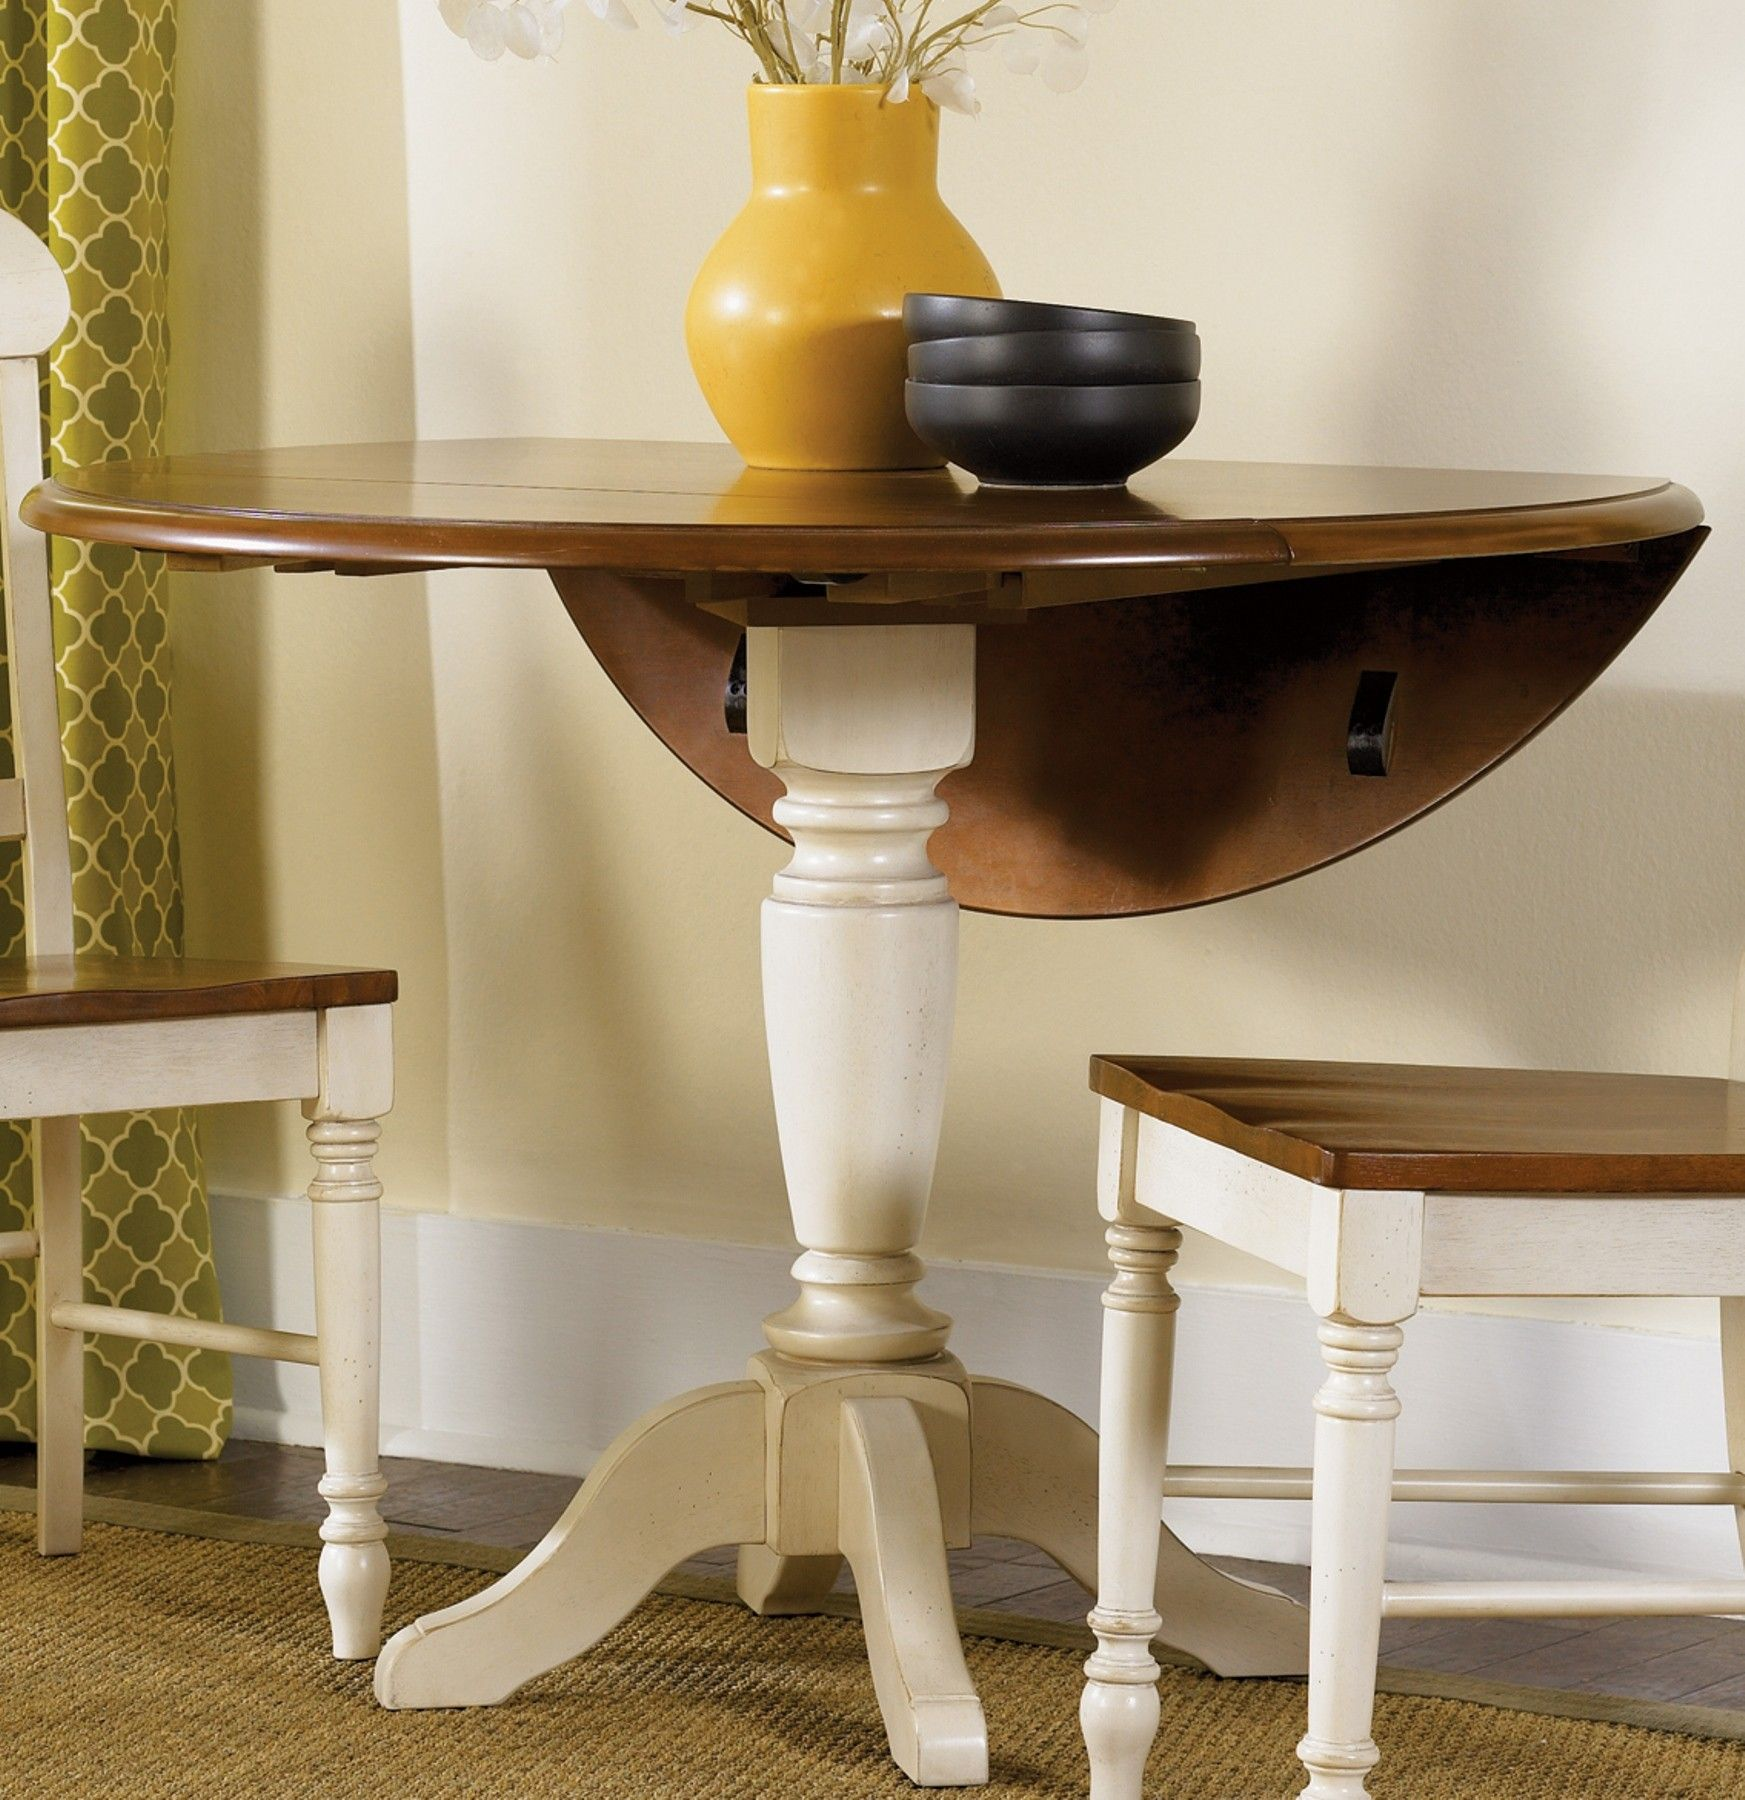 Low Country Sand Drop Leaf Pedestal Table Drop Leaf Table Side Chairs Dining Liberty Furniture